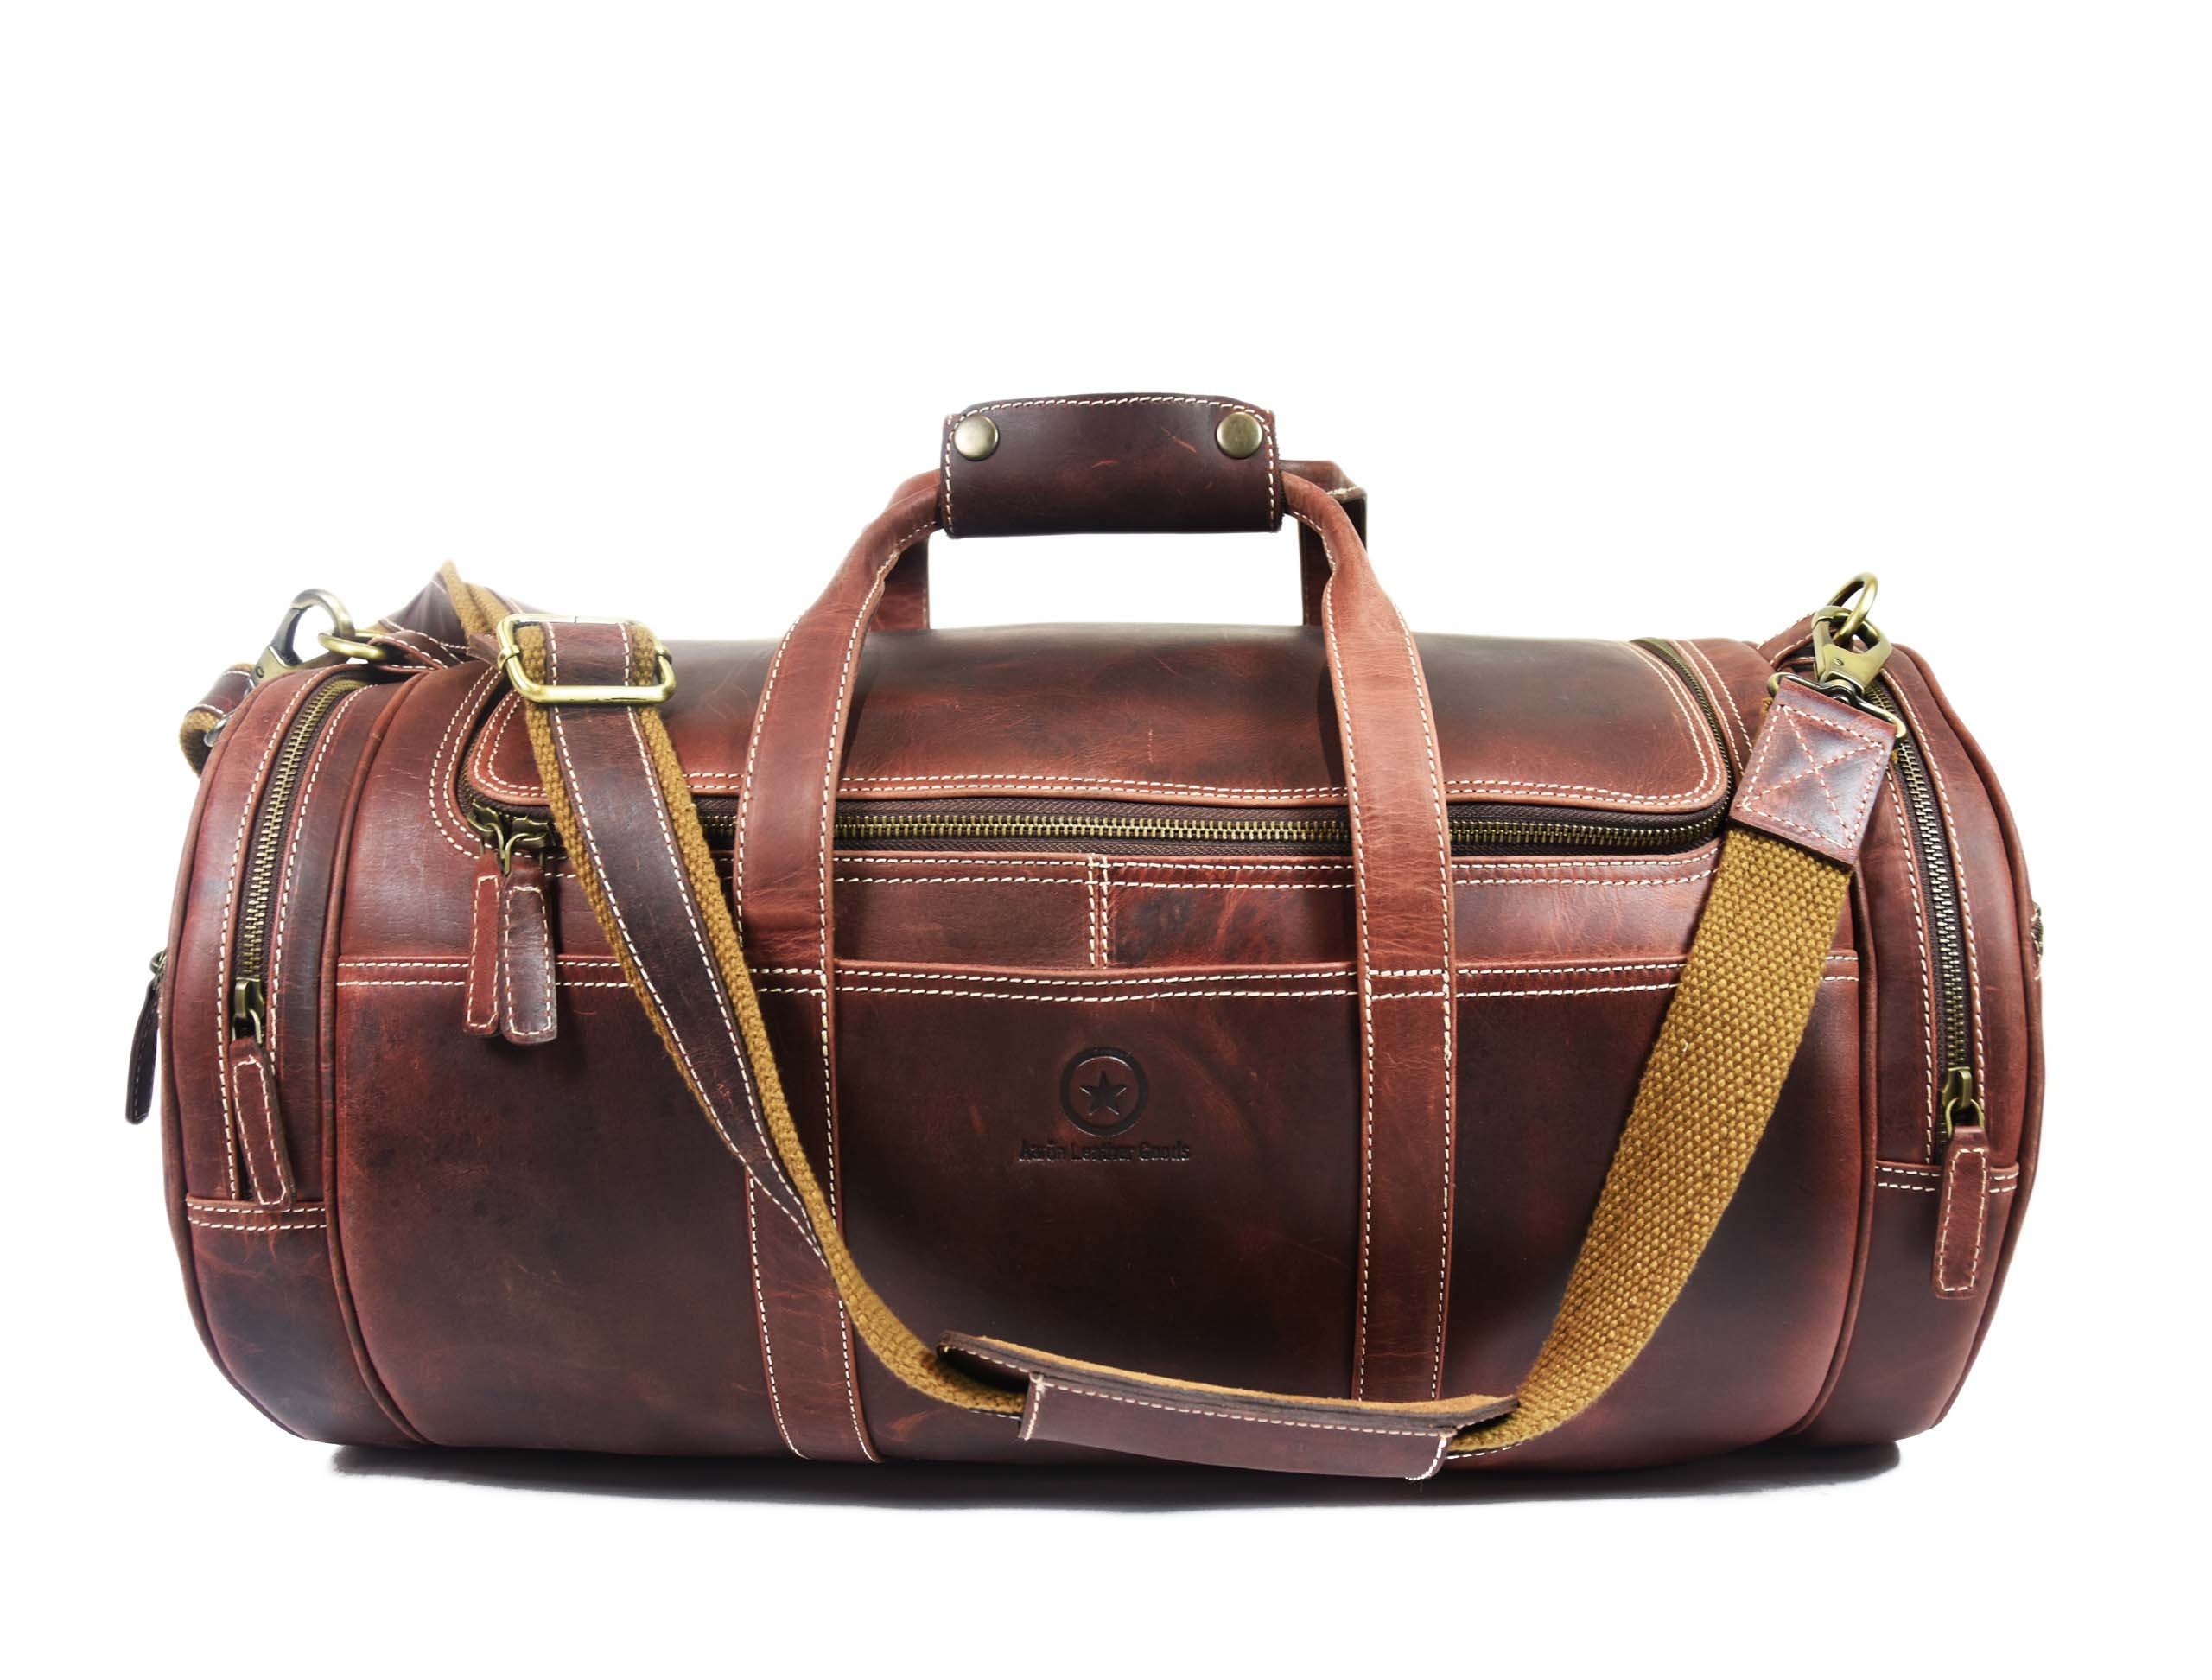 Travel Duffel Overnight Barrel Weekend Leather Bag by Aaron Leather